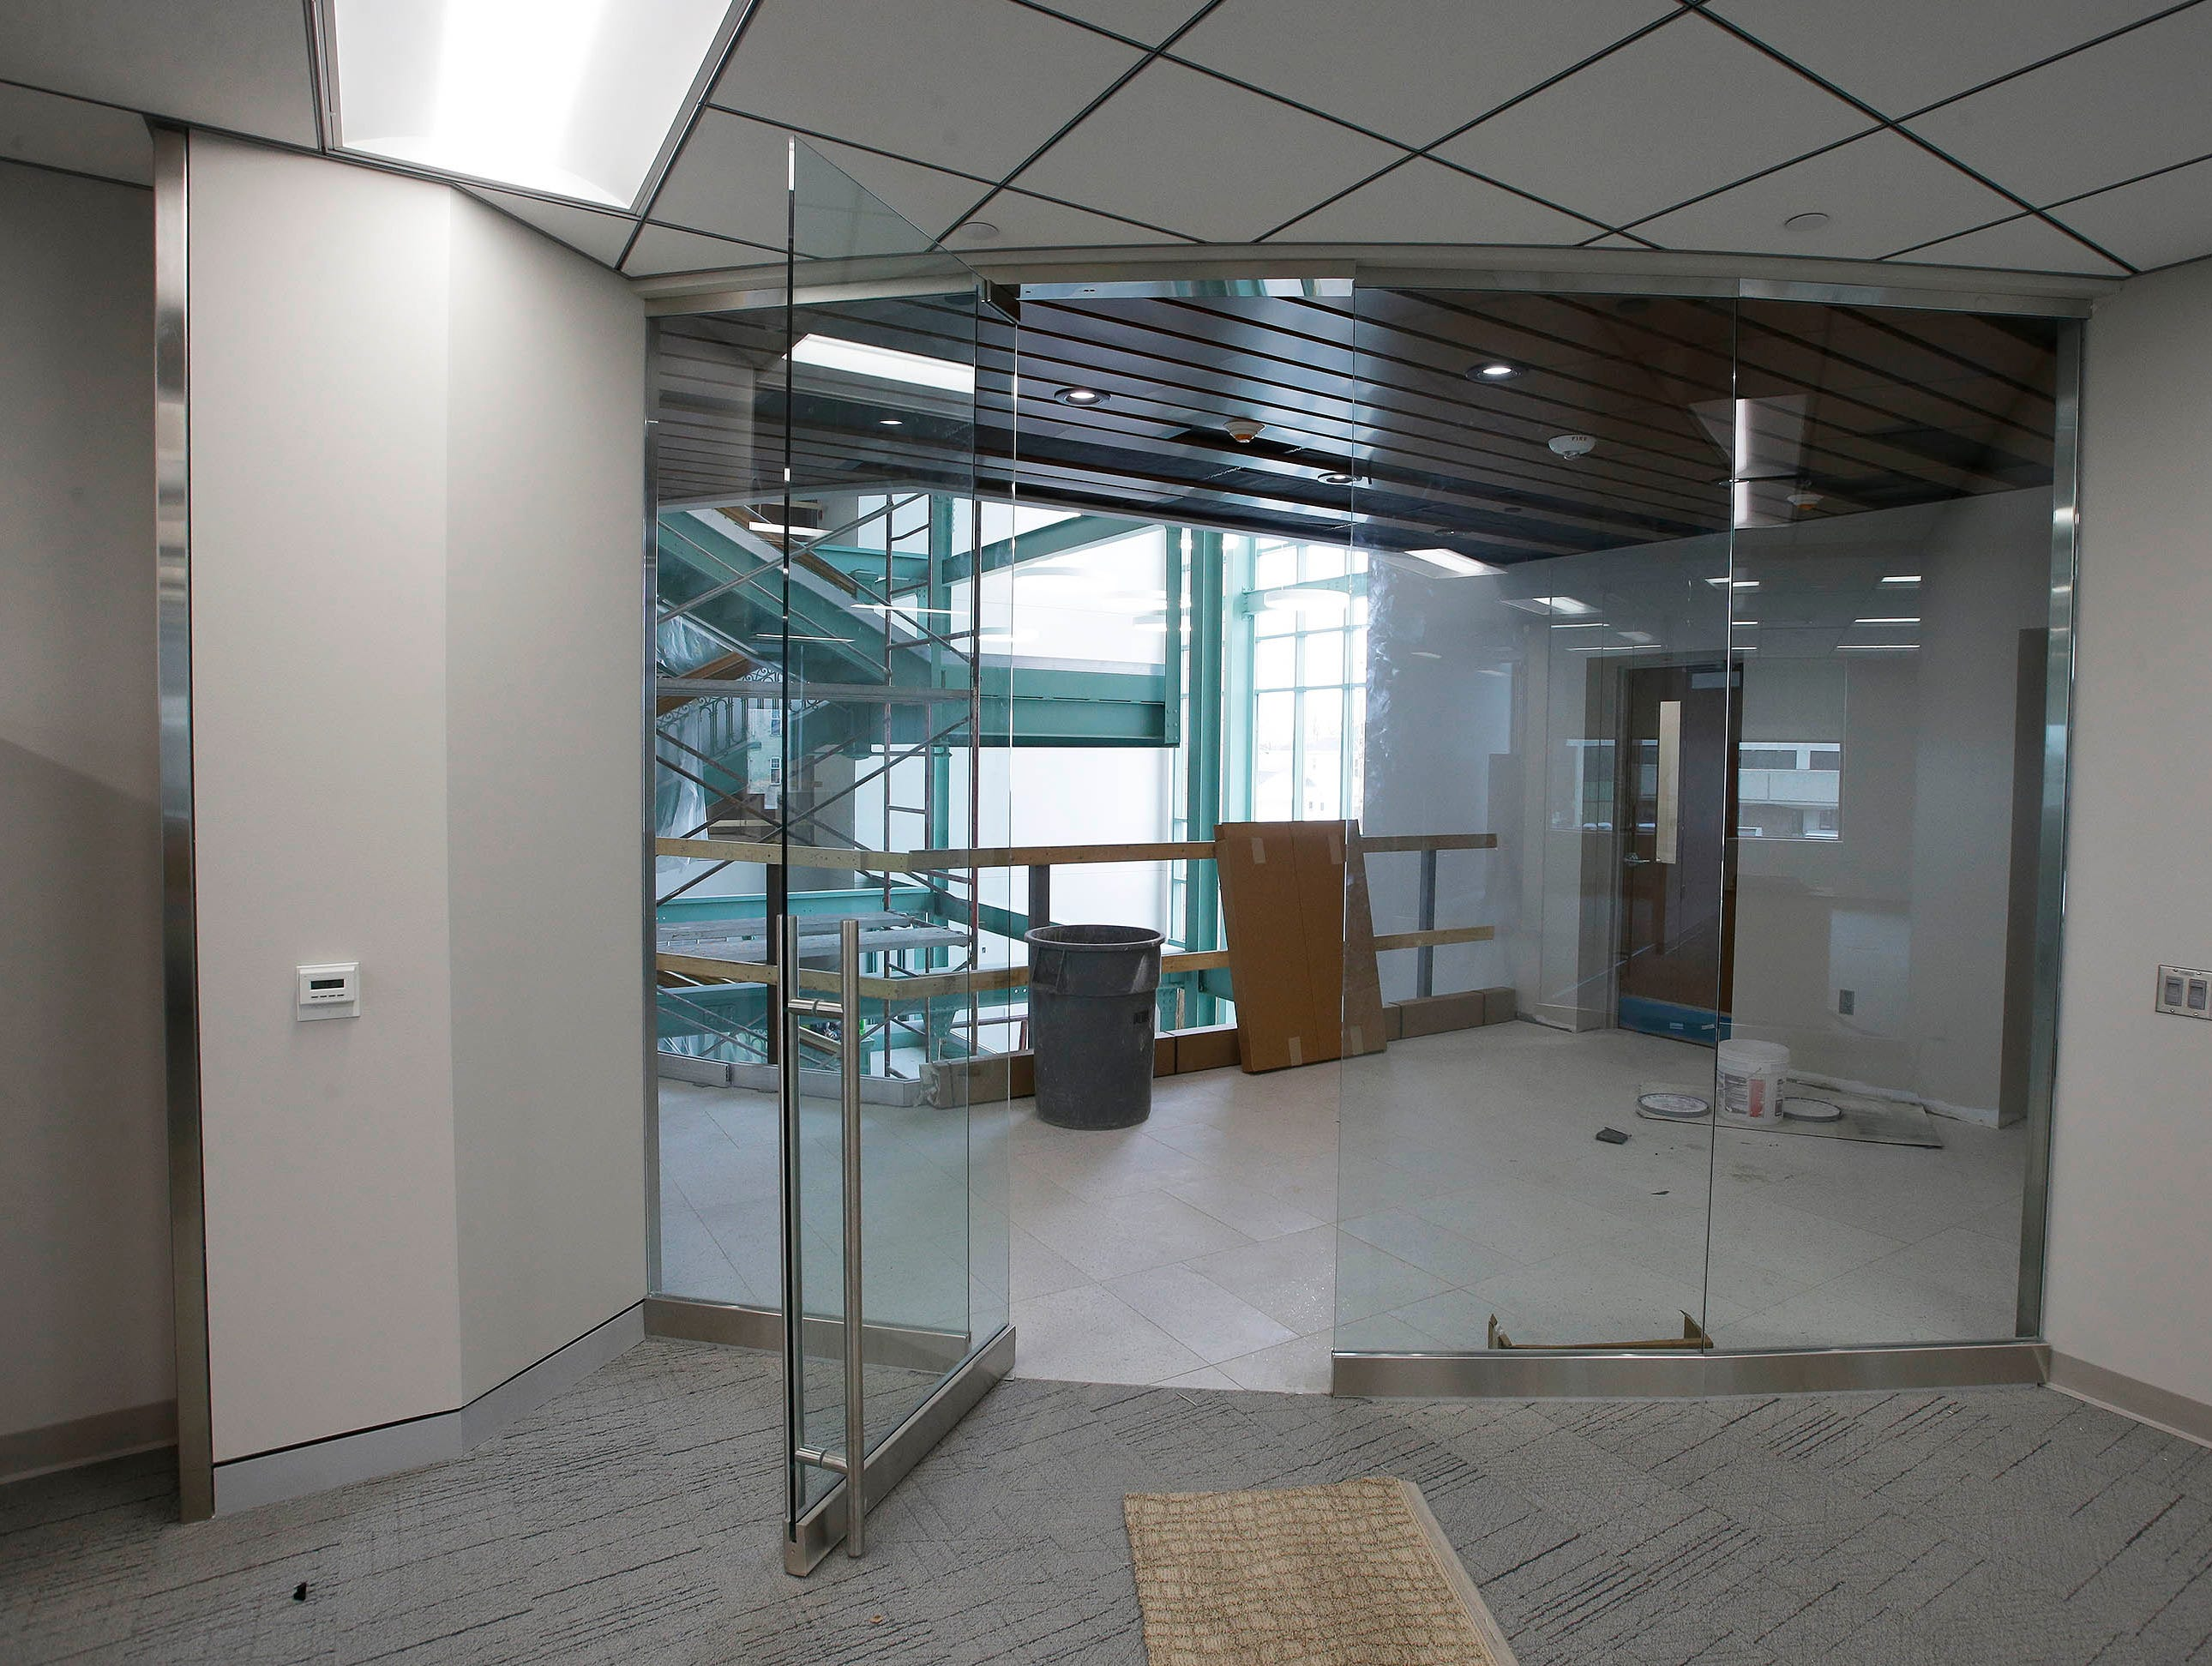 According to Director of Public Works David Biebel, in remodeling Sheboygan City Hall care was taken to make sure the city's work is more transparent by using more glass in remodeling, Tuesday, May 7, 2019, in Sheboygan, Wis.